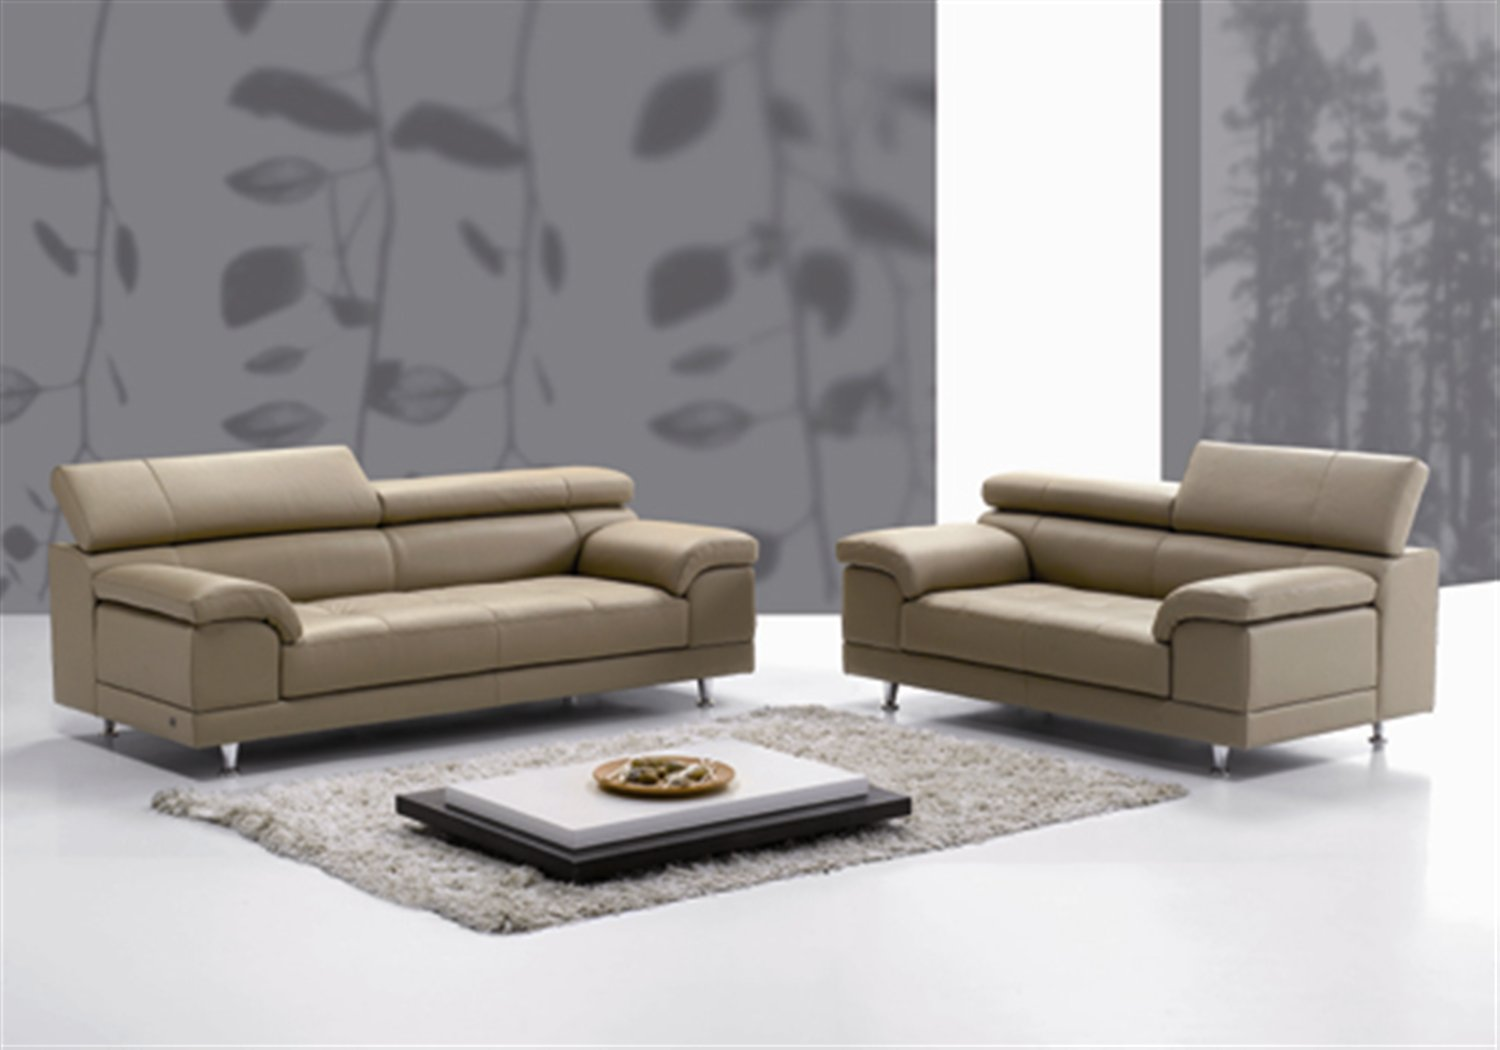 Italian leather sofa affordable and quality from piquattro for Italian leather sofa